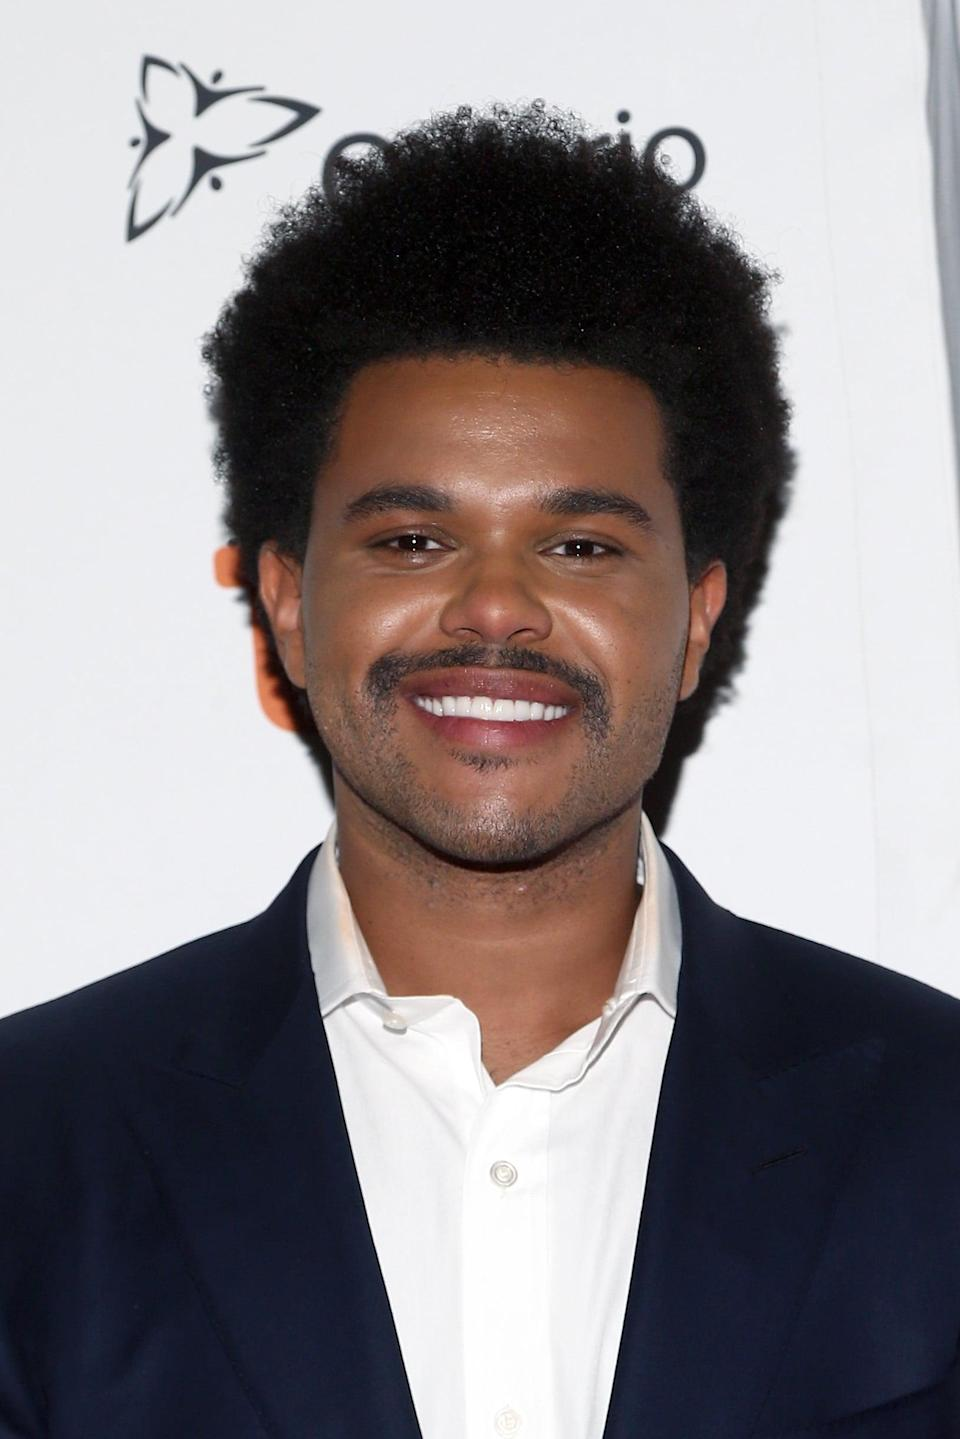 """<p>In 2019, he stepped out at a film festival wearing a <a href=""""https://www.popsugar.com/beauty/the-weeknd-new-hair-toronto-international-film-festival-46599064"""" class=""""link rapid-noclick-resp"""" rel=""""nofollow noopener"""" target=""""_blank"""" data-ylk=""""slk:slightly longer, more rounded afro"""">slightly longer, more rounded afro</a> and a horseshoe mustache.</p>"""